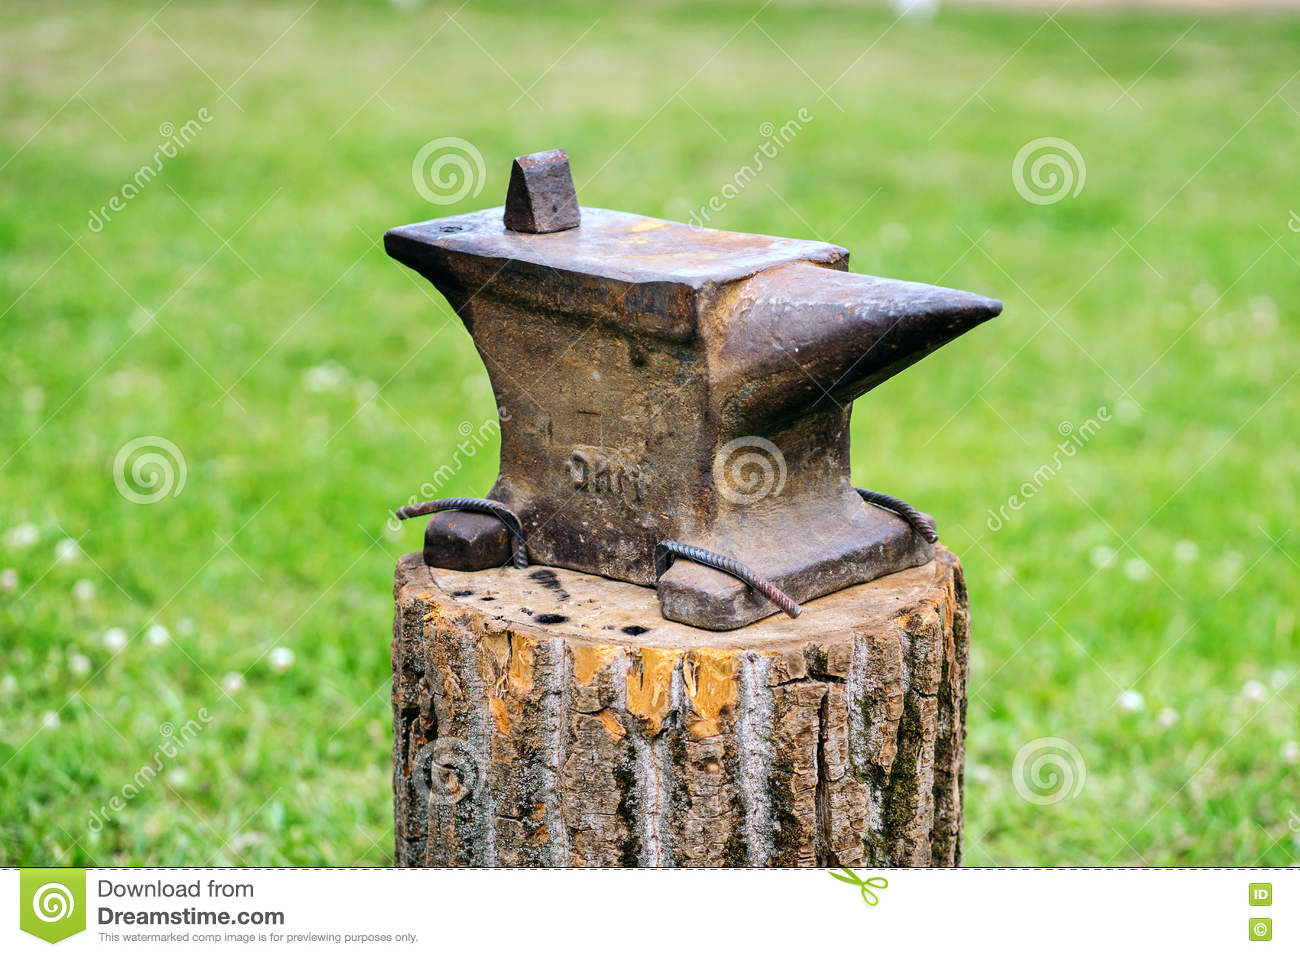 The old anvil is on the stump.